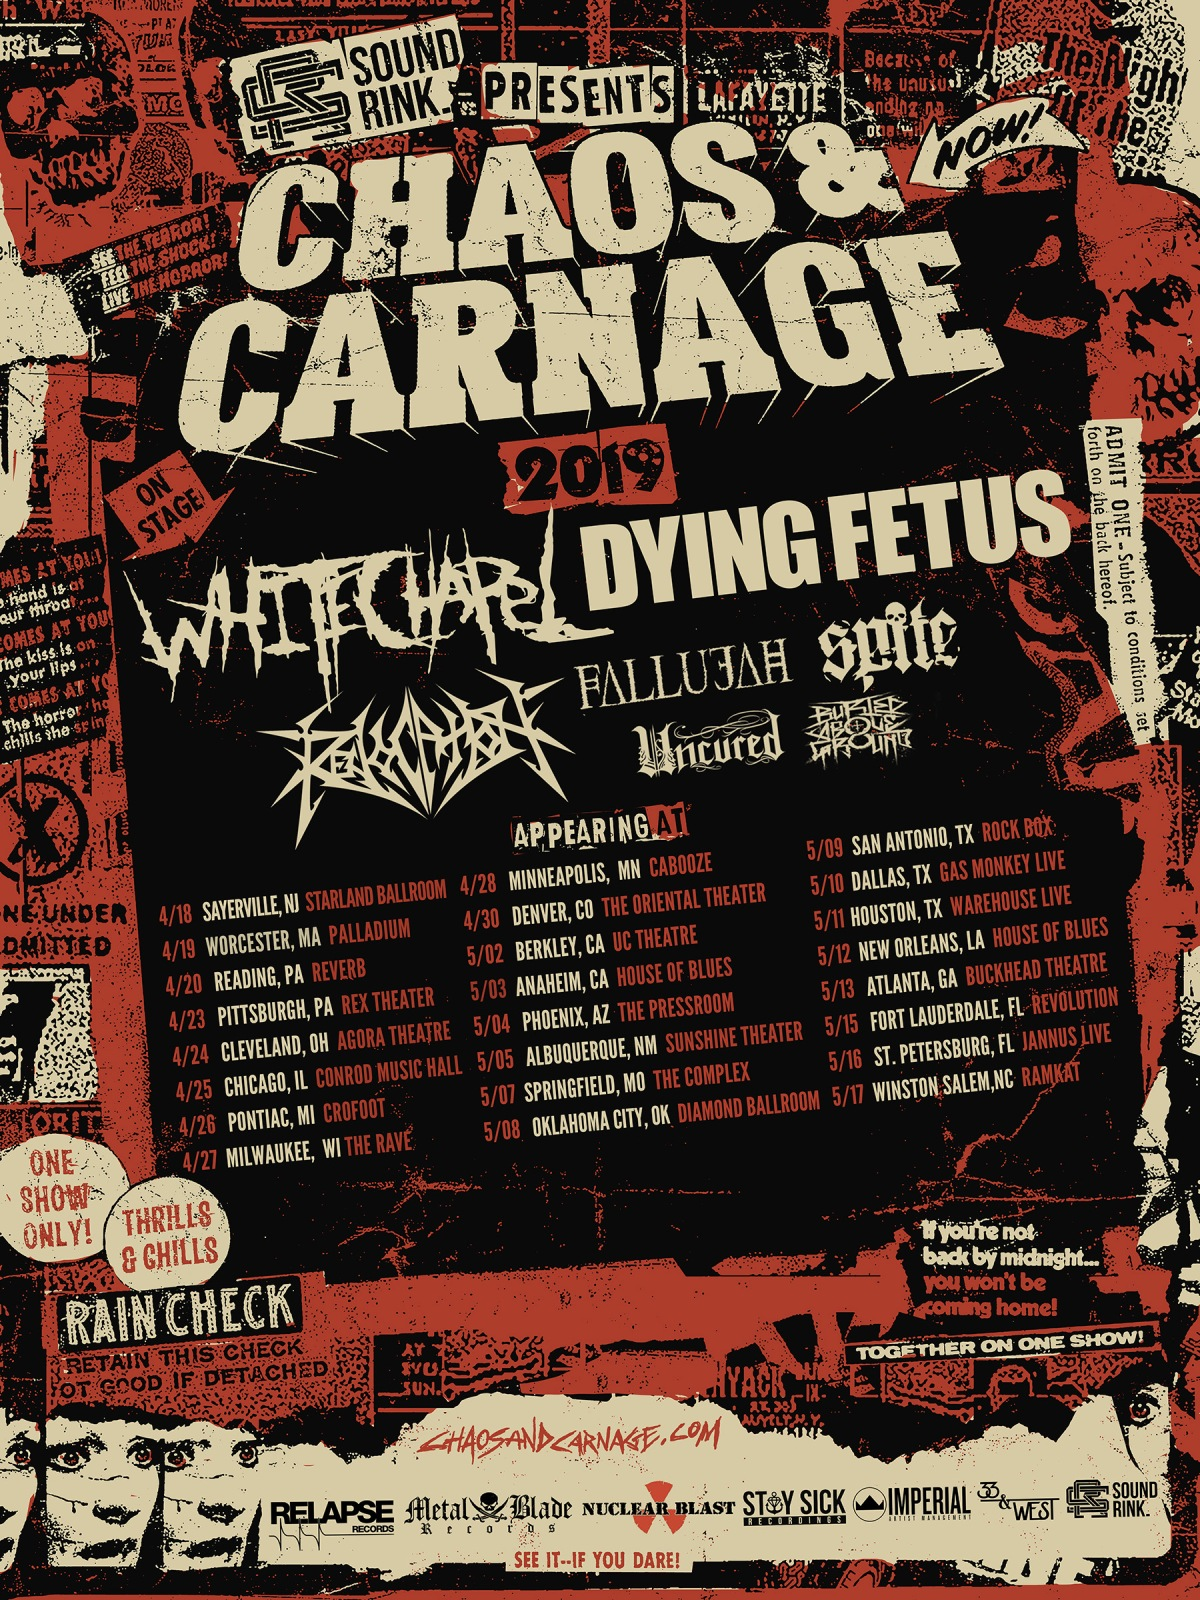 REVOCATION Kicks Off Chaos and Carnage US Tour With Whitechapel, Dying Fetus, Fallujah, And More